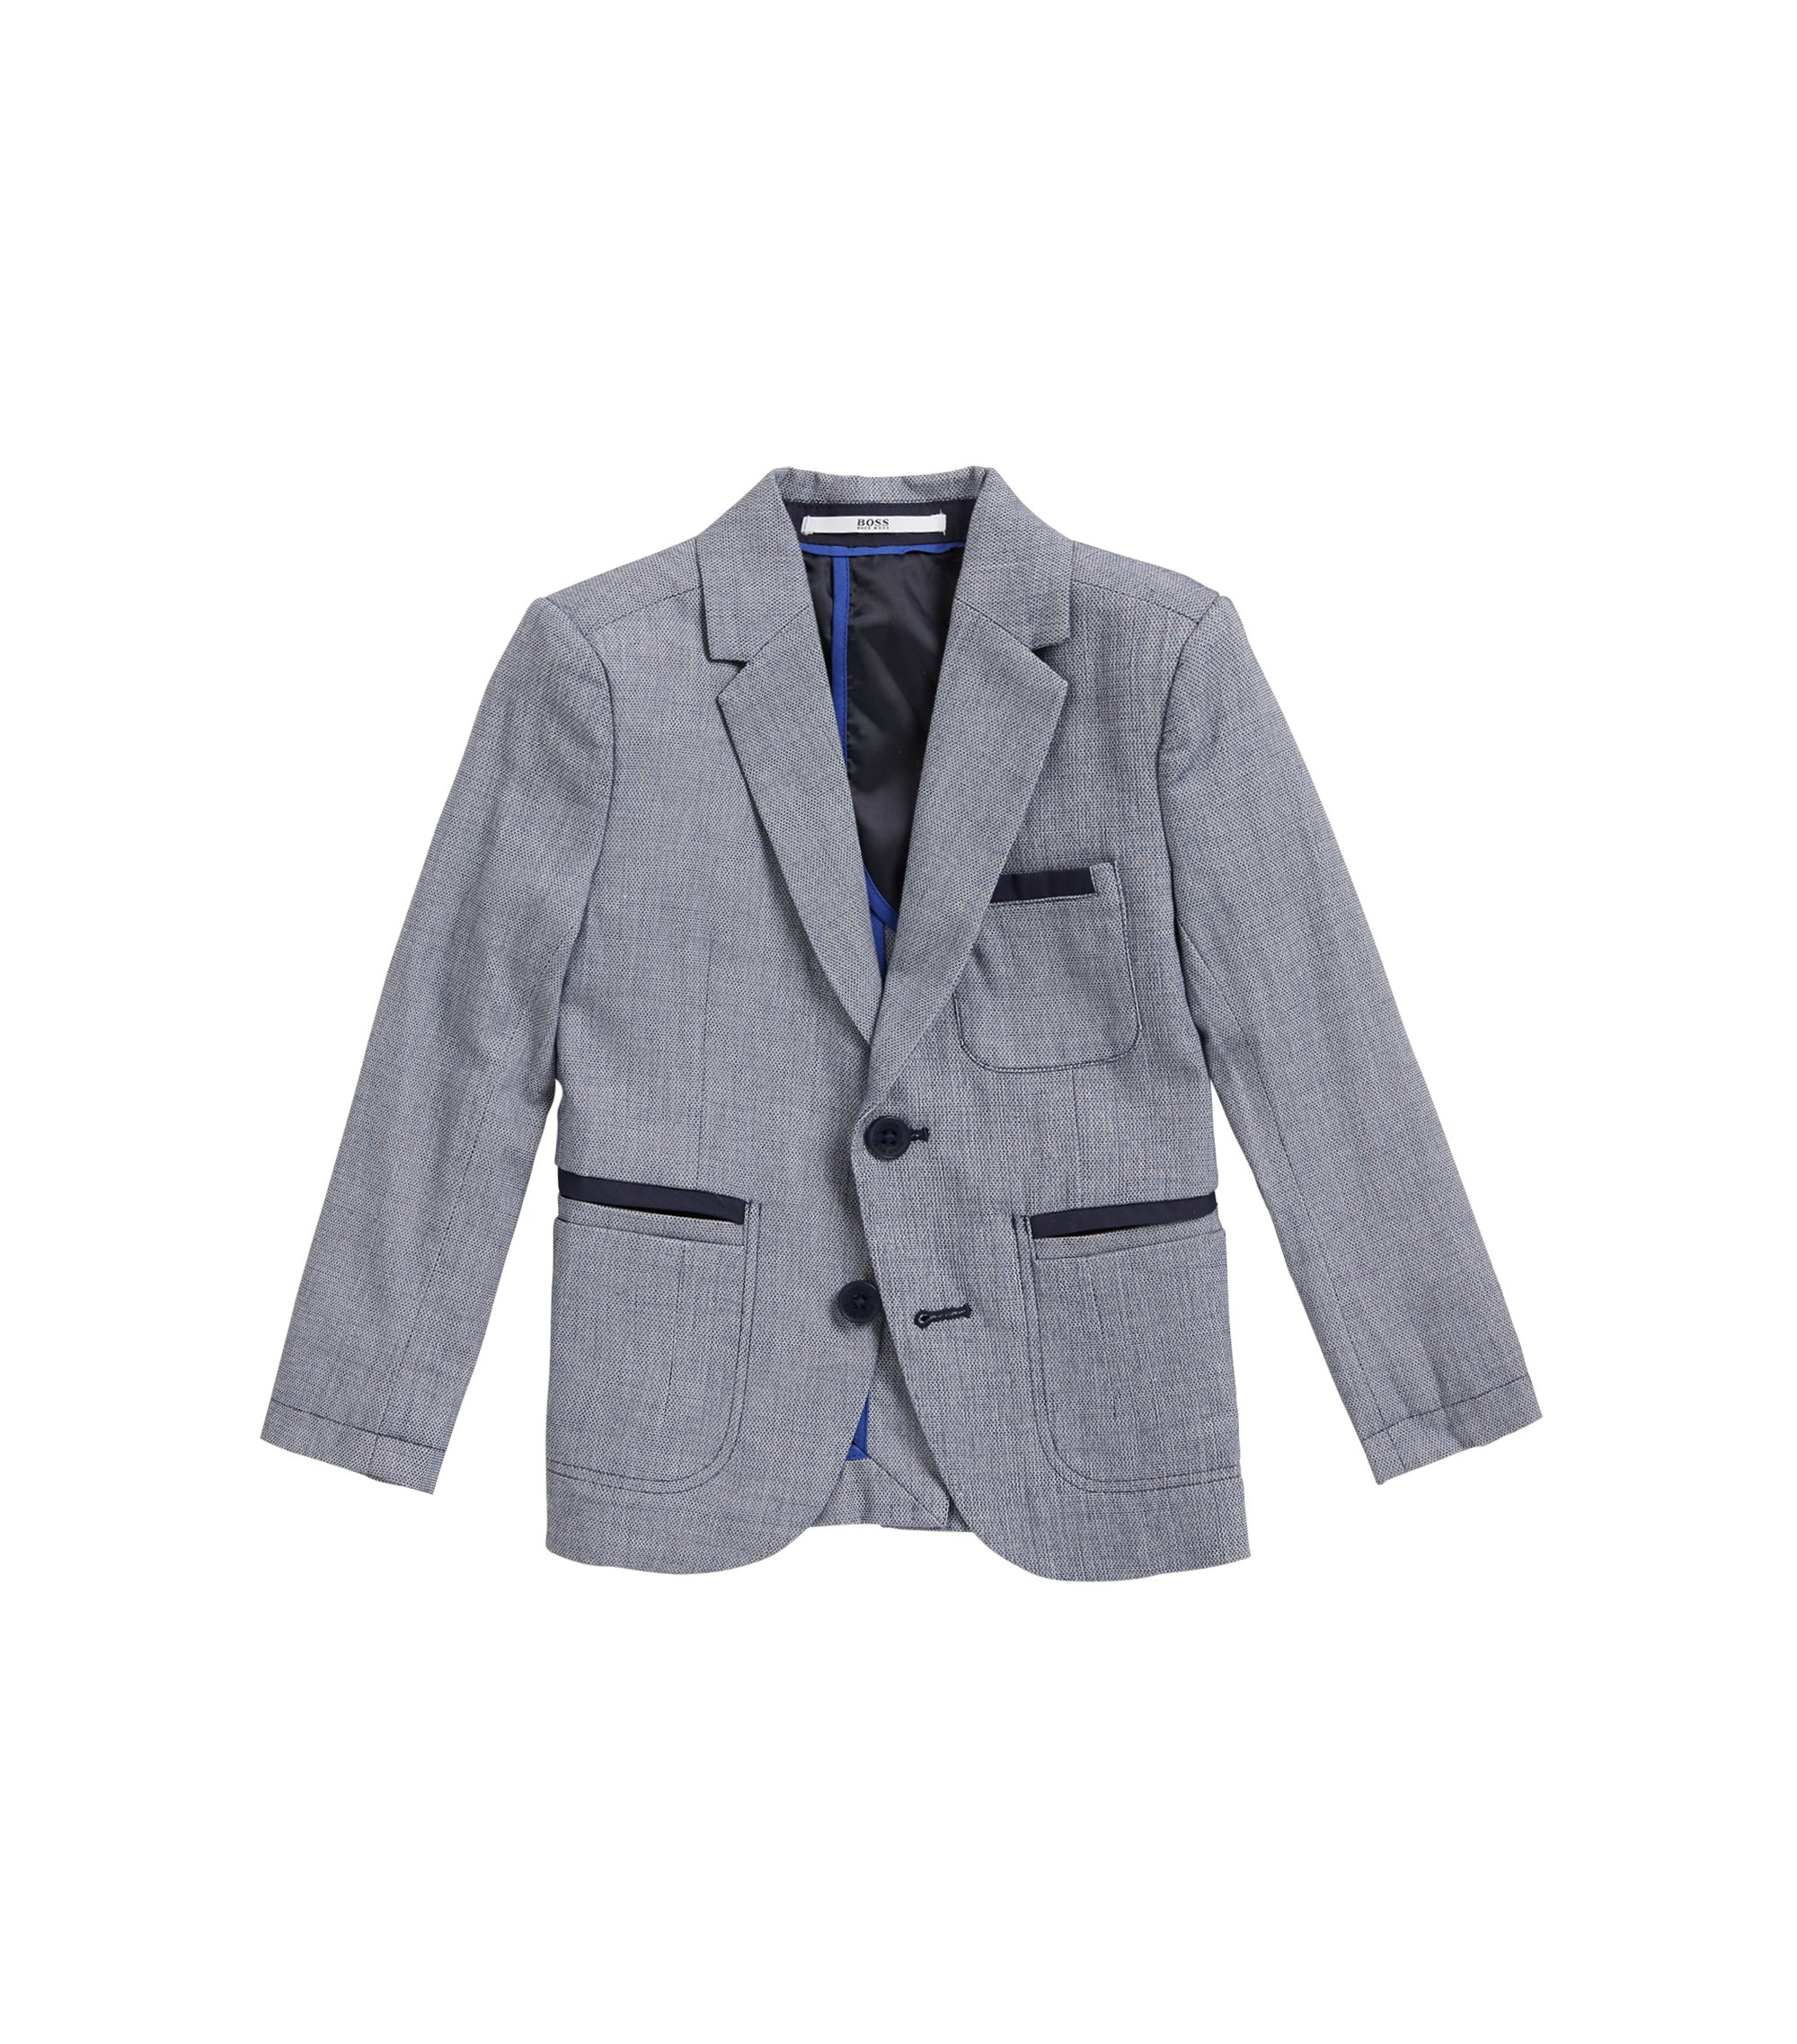 Kids' suit jacket in woven cotton , Patterned